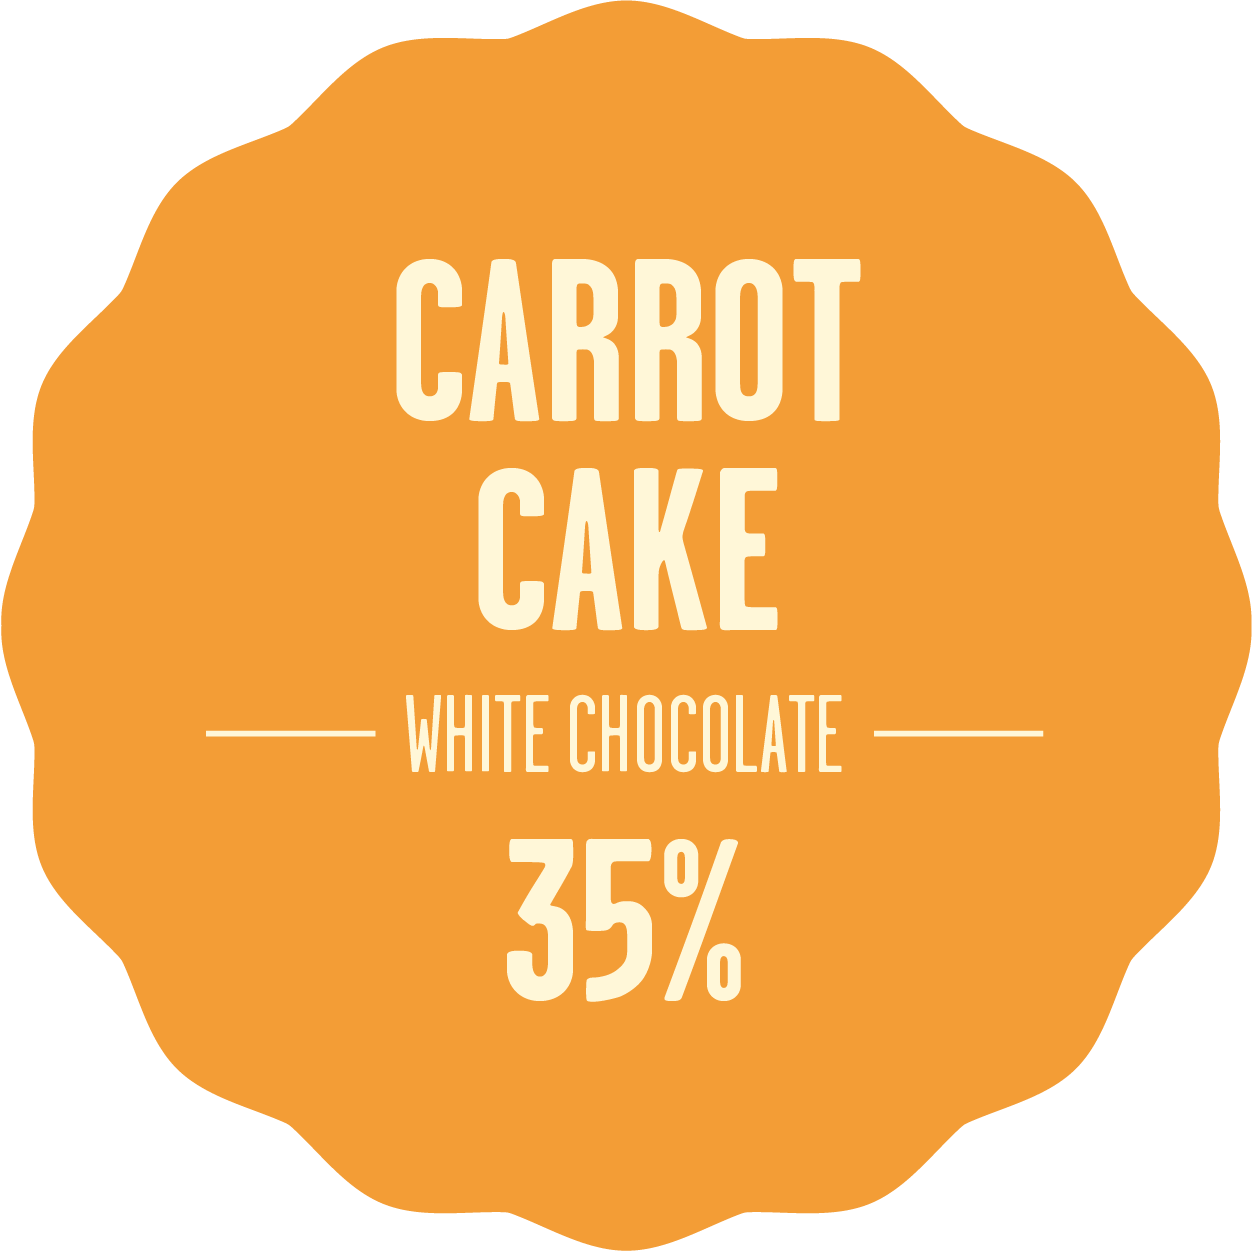 White chocolate carrot cake 300px